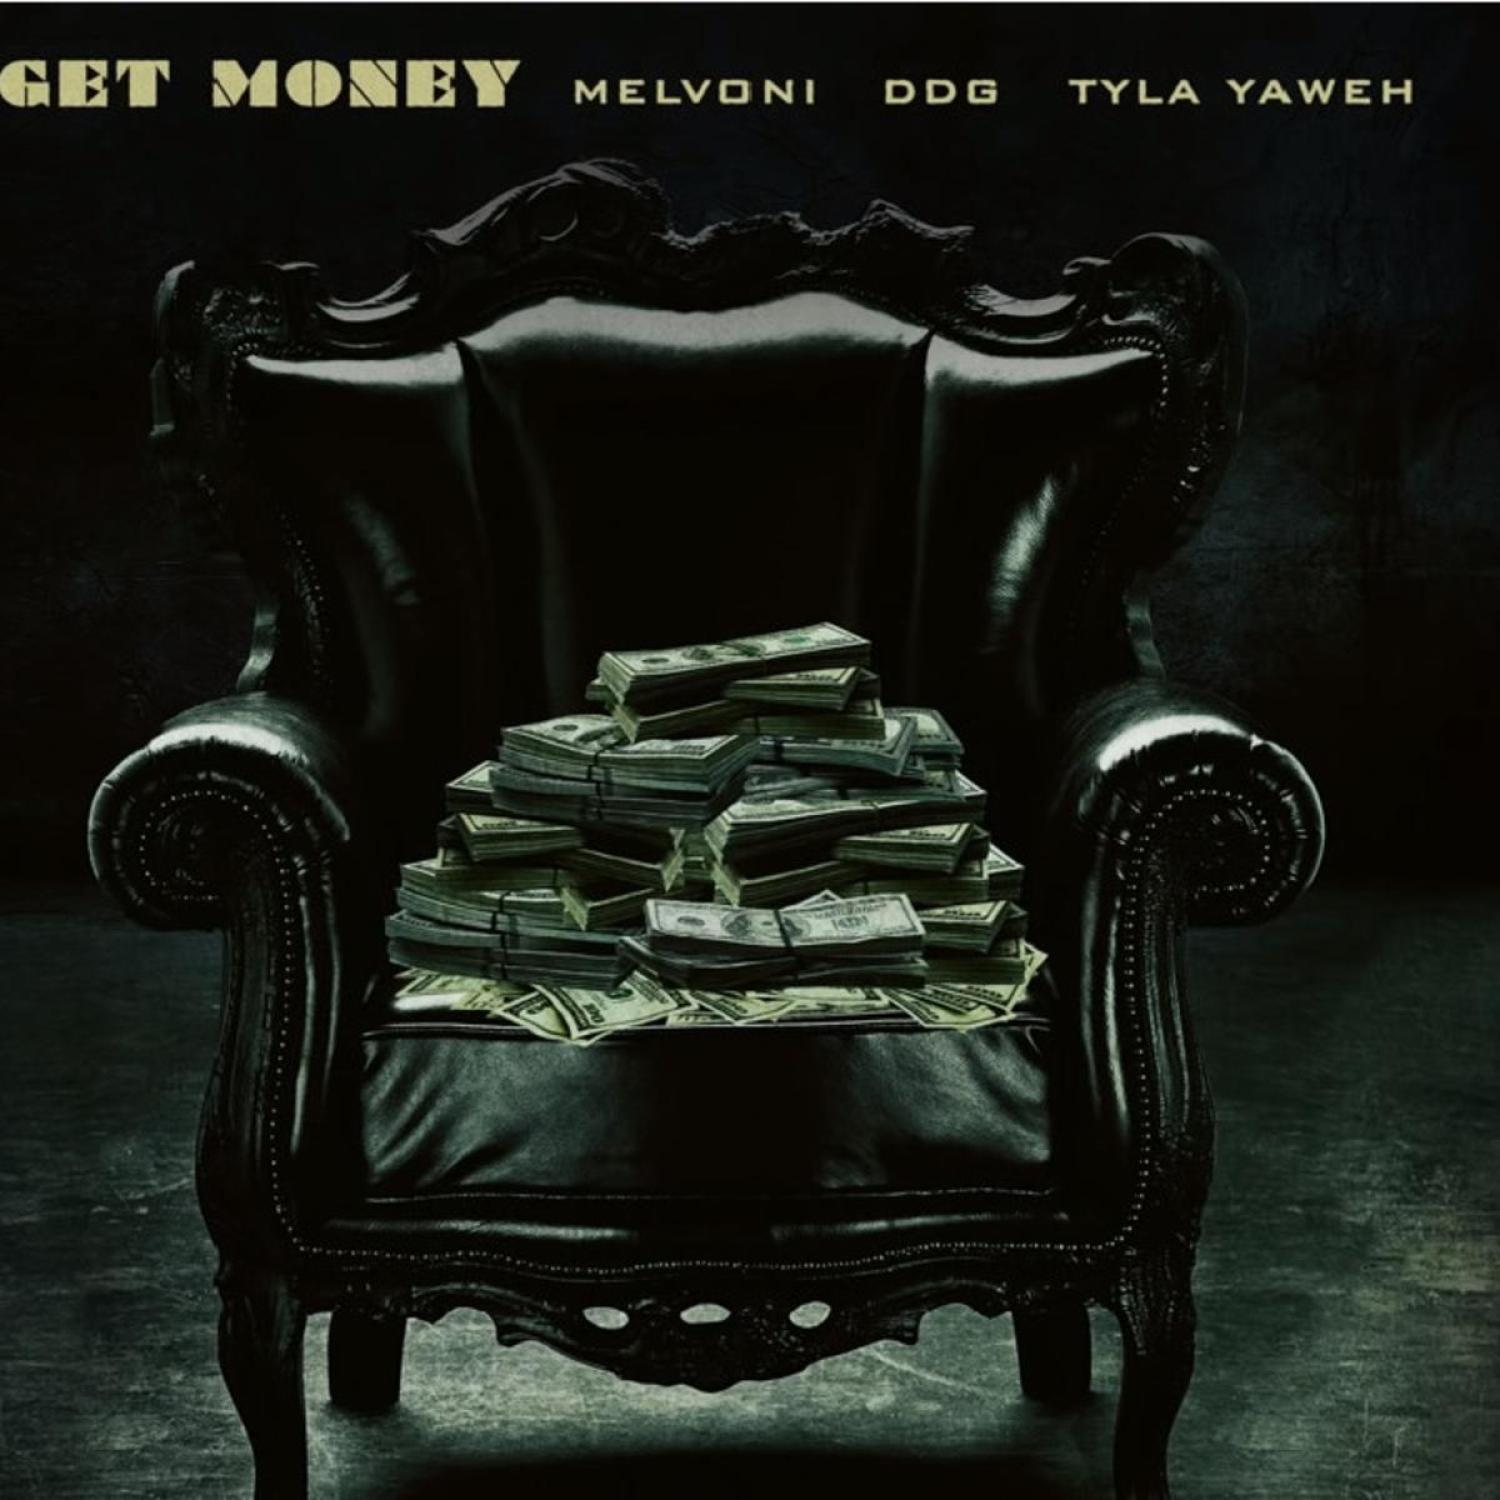 DOWNLOAD MP3: Melvoni Ft. DDG & Tyla Yaweh – Get Money AUDIO 320kbps